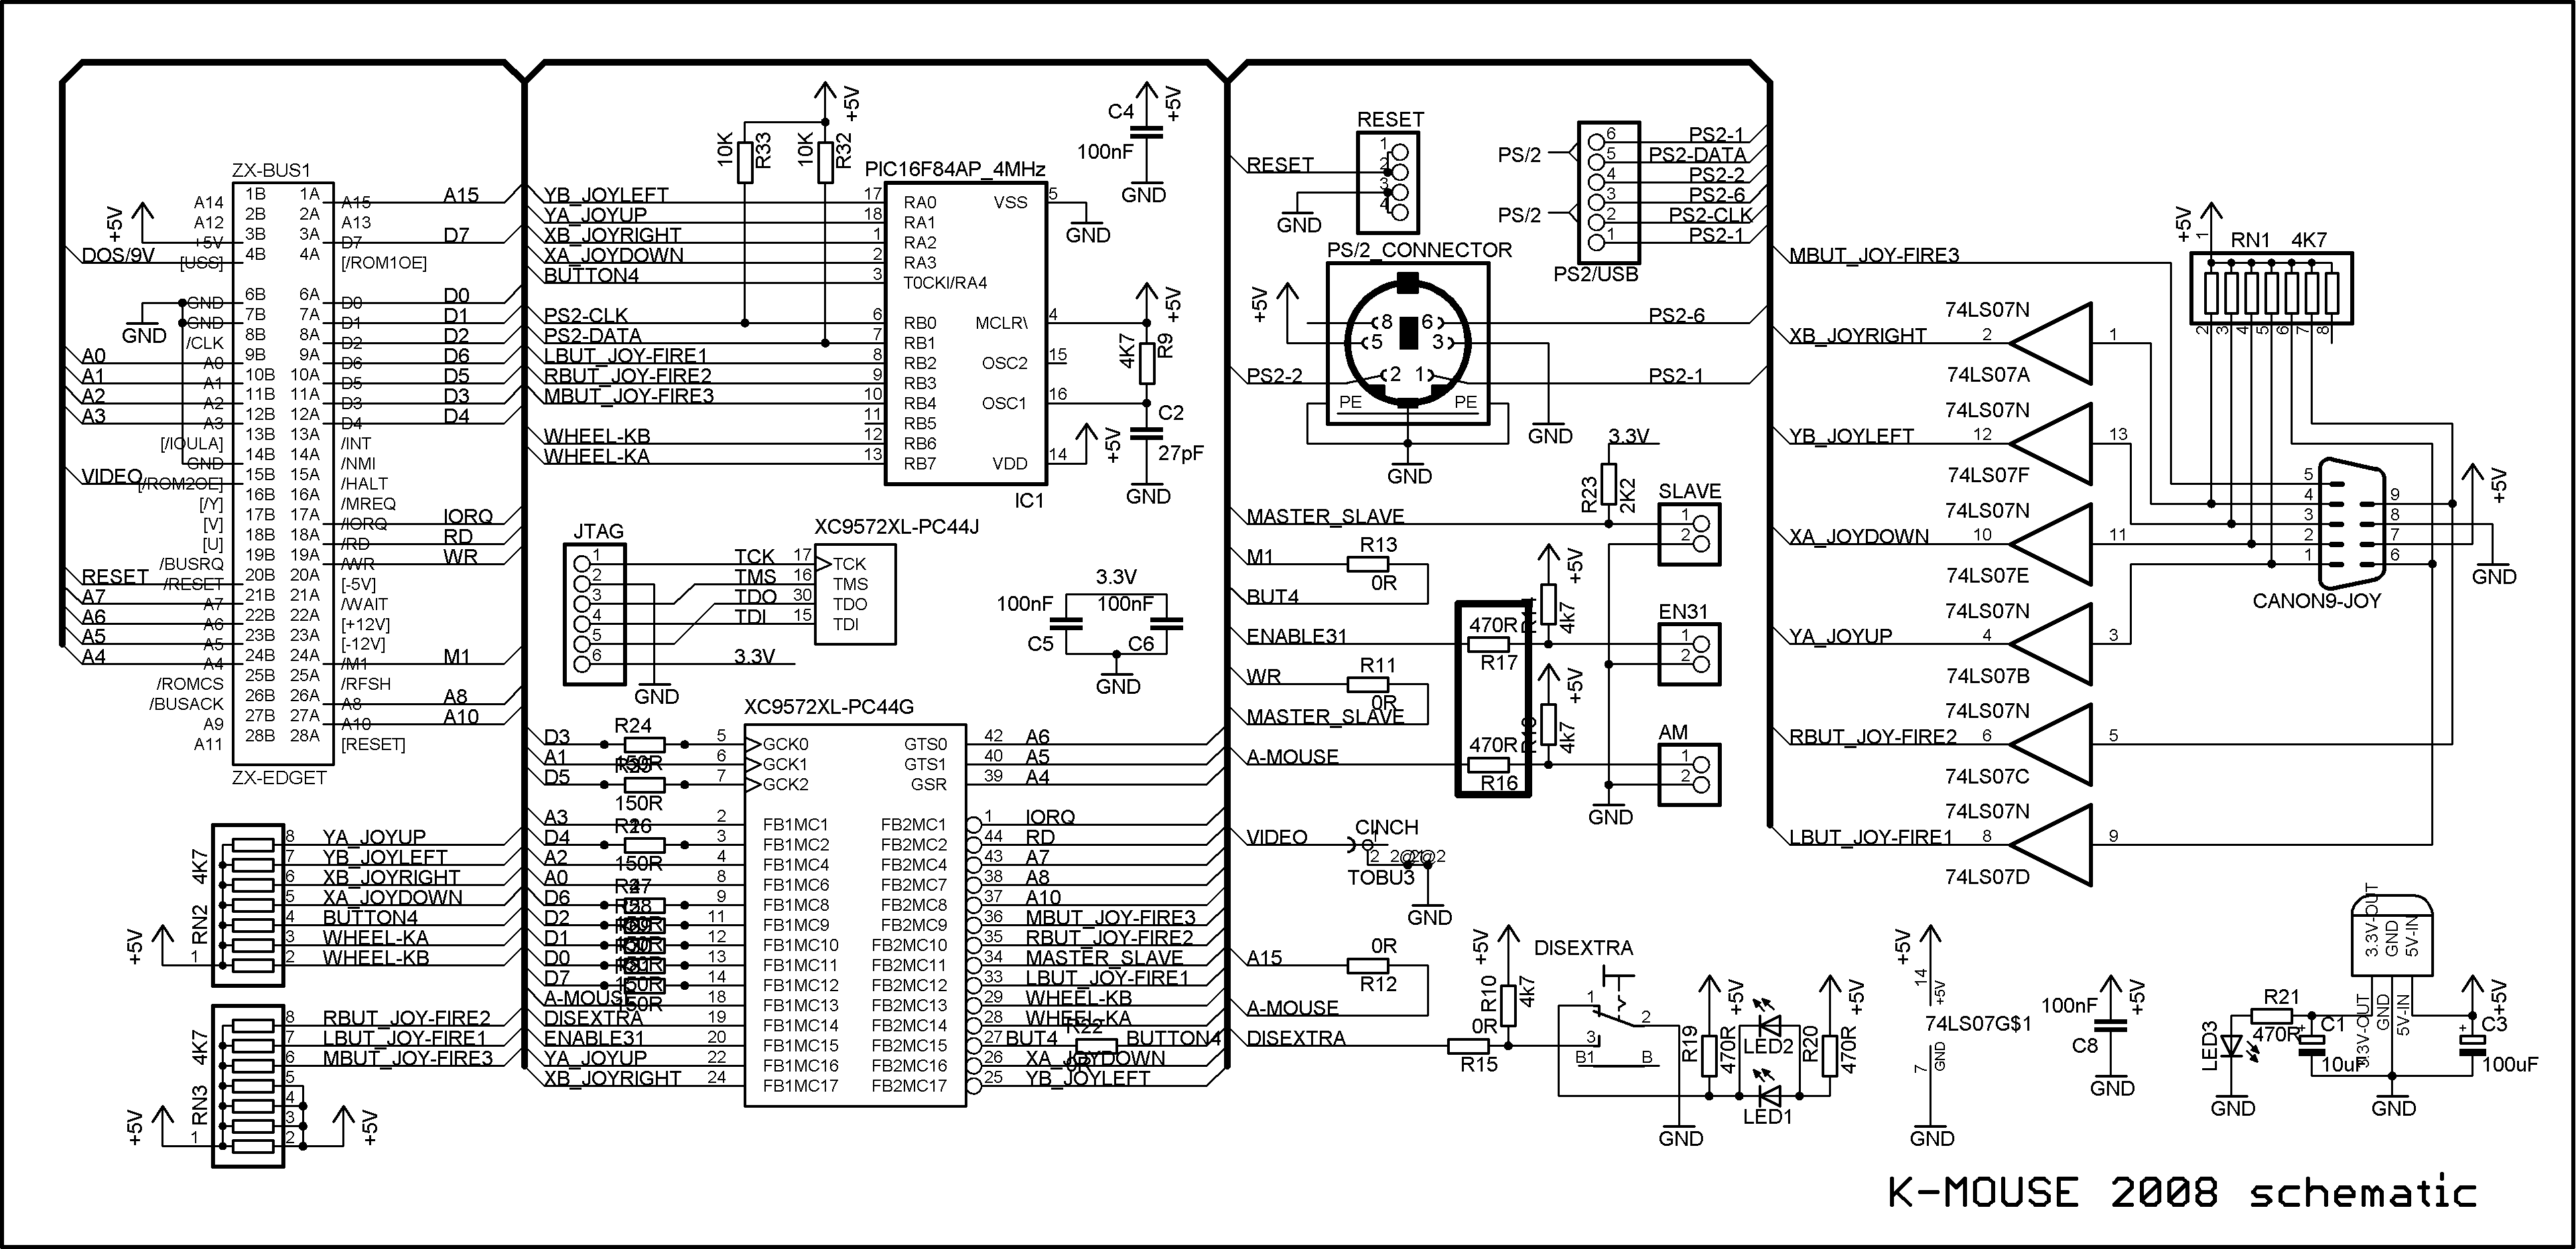 wiring diagram usb mouse wiring image wiring diagram ps2 mouse usb wiring diagram wiring diagram and schematic on wiring diagram usb mouse